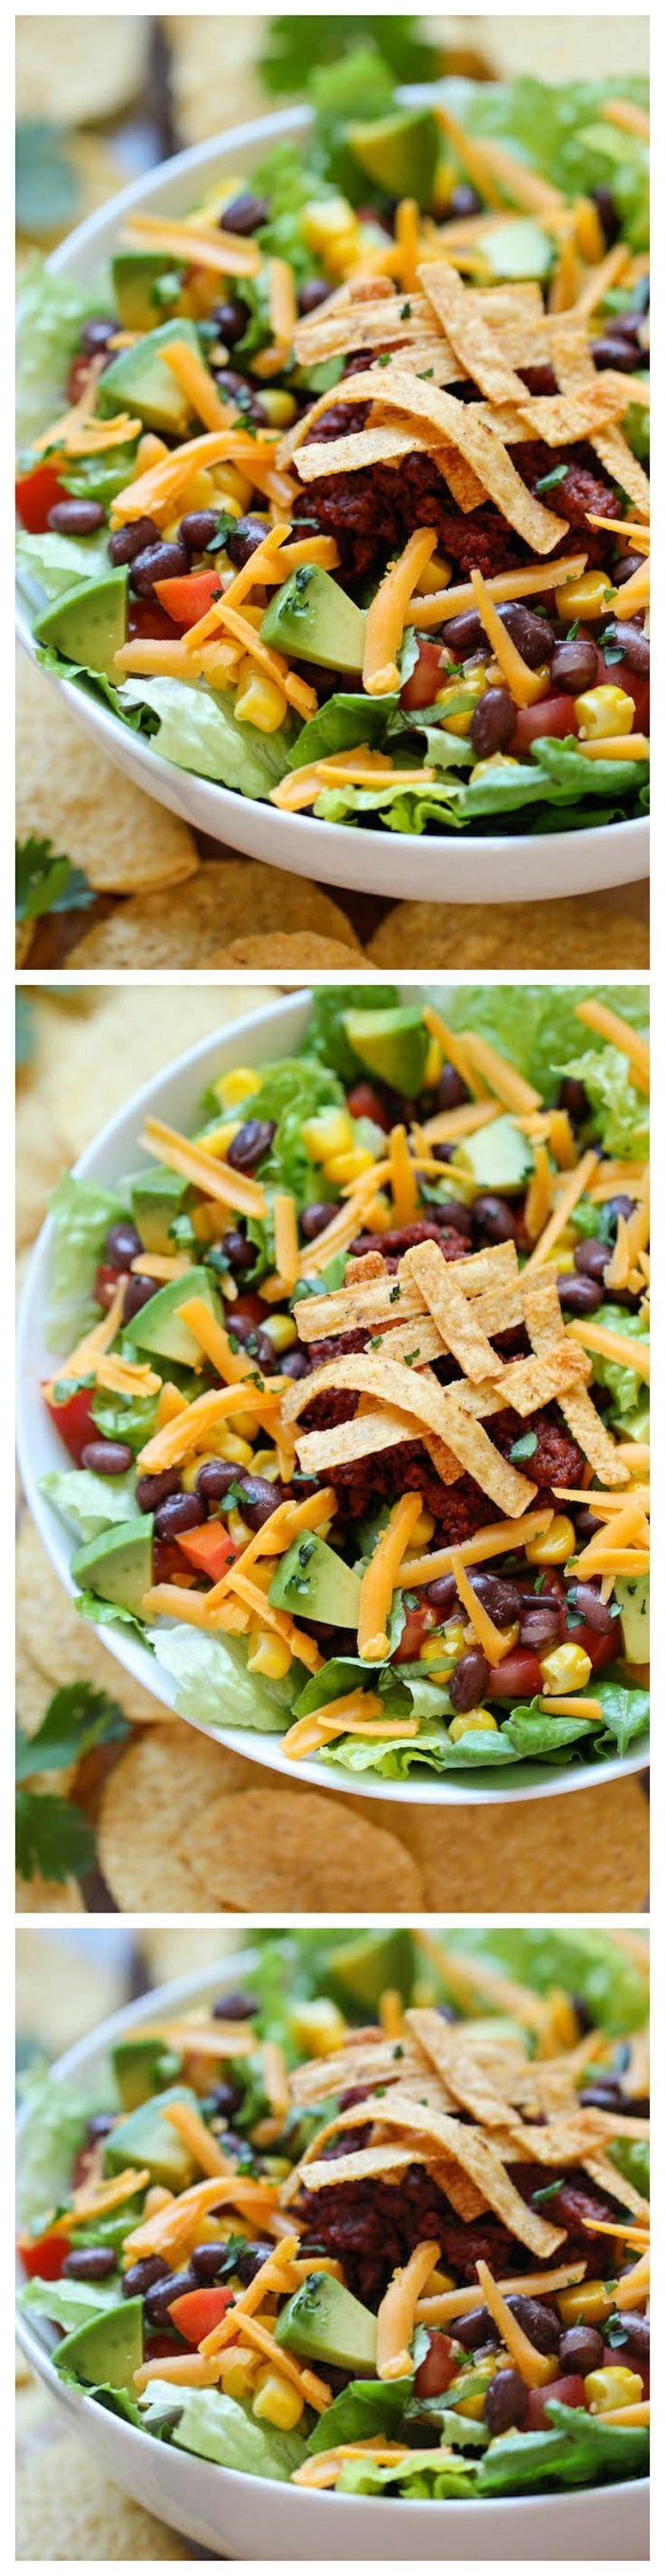 Taco Salad – Start the new year right with this healthy taco salad tossed in a refreshing, tangy lime vinaigrette!  Johnson Johnson Johnson Butts-Ah Rhee